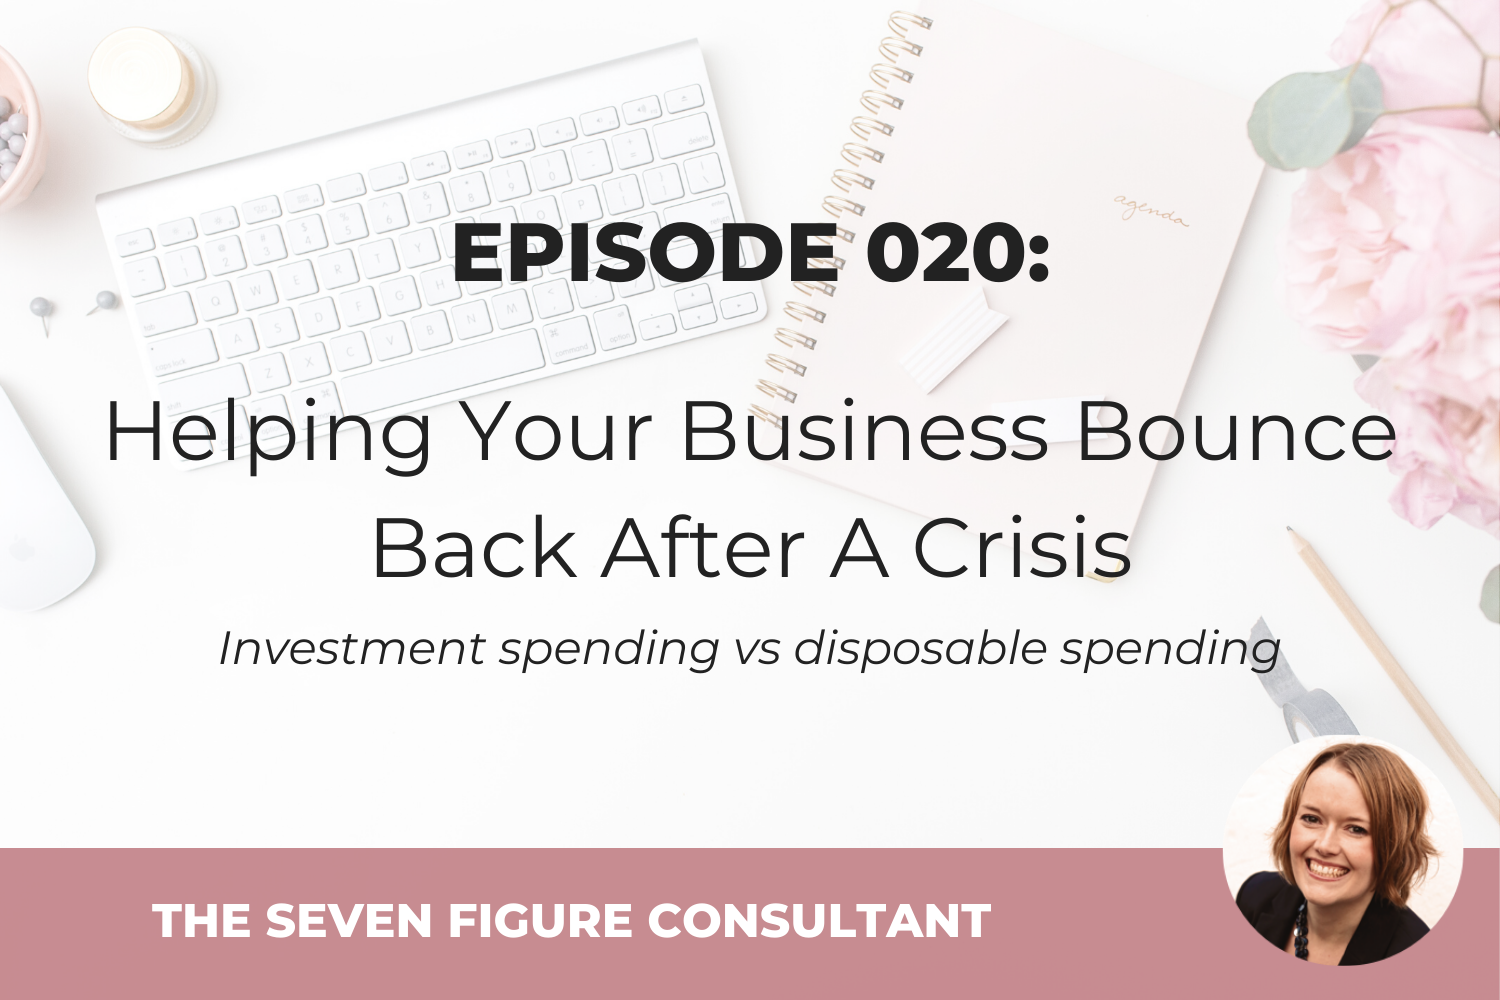 Episode 020: Helping Your Business Bounce Back After A Crisis – investment spending vs disposable spending